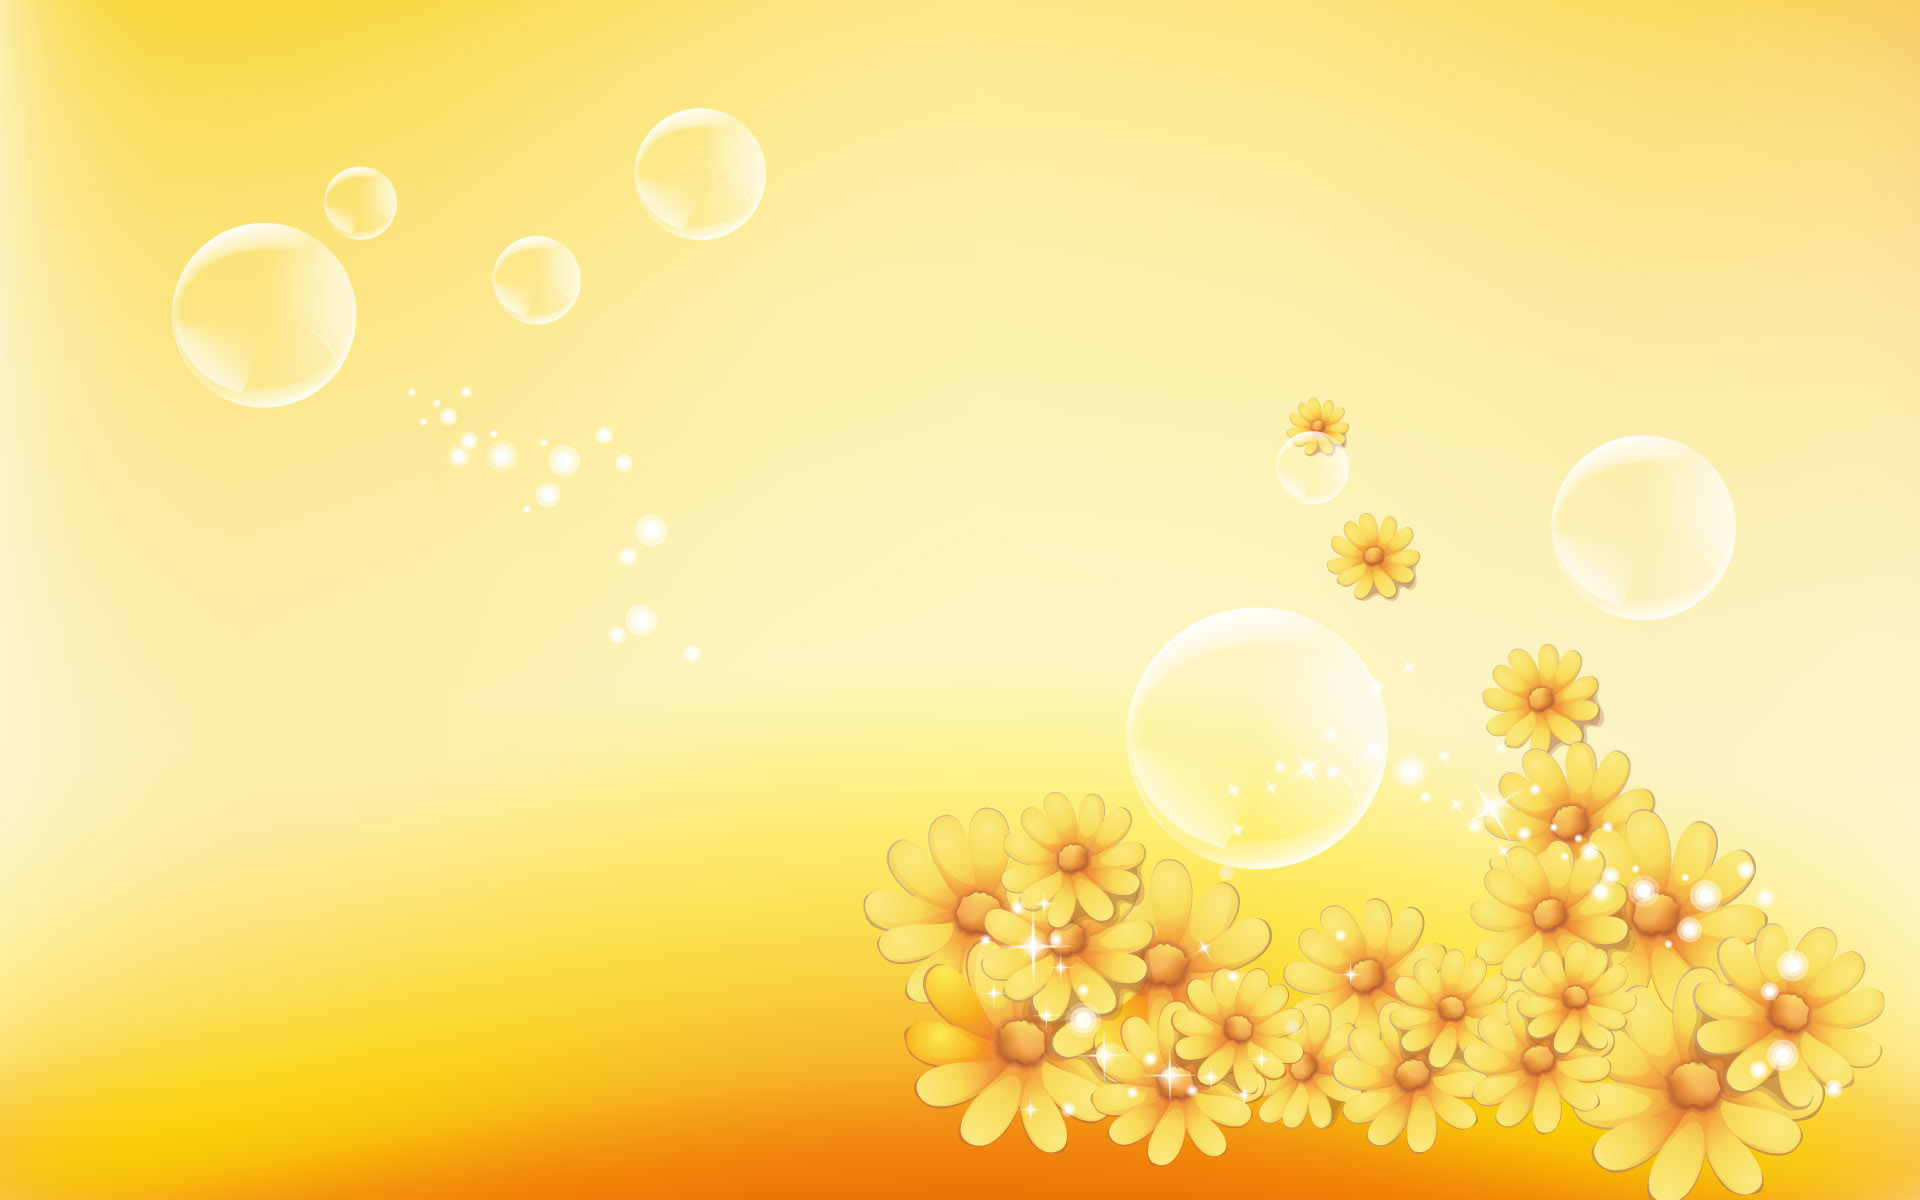 Yellow Flower Graphic Floral Design